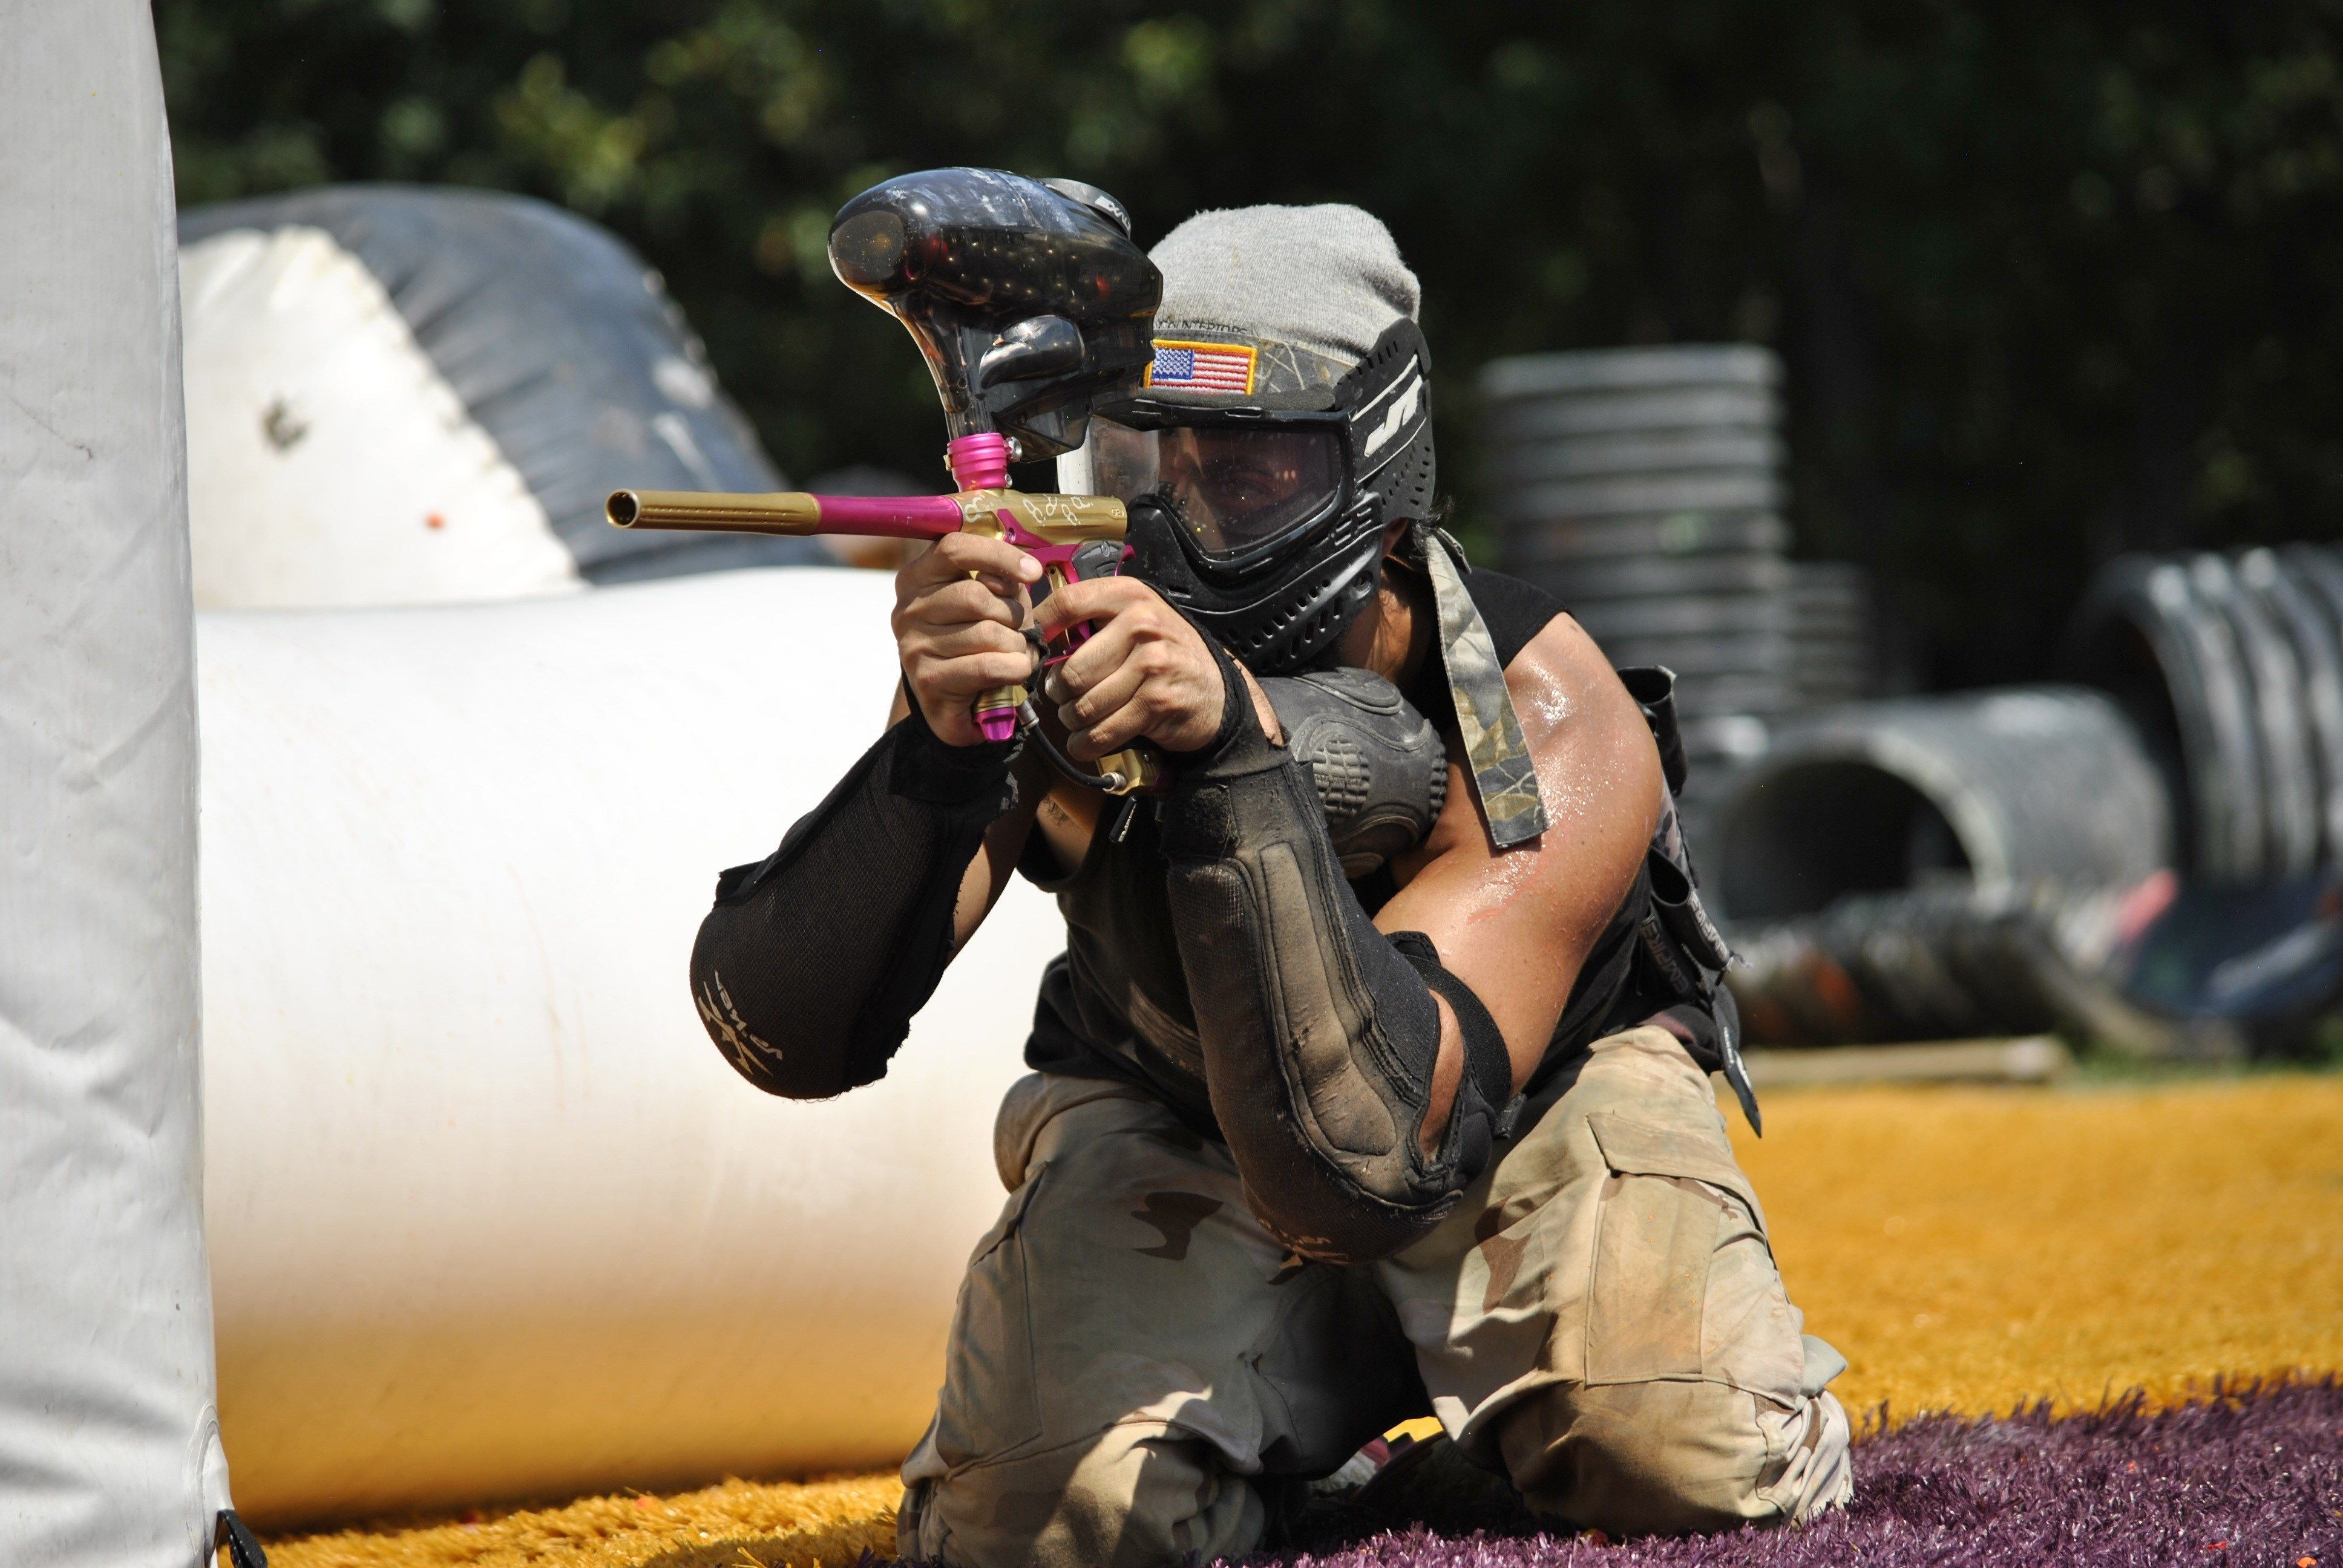 3872x2592 free desktop backgrounds for paintball